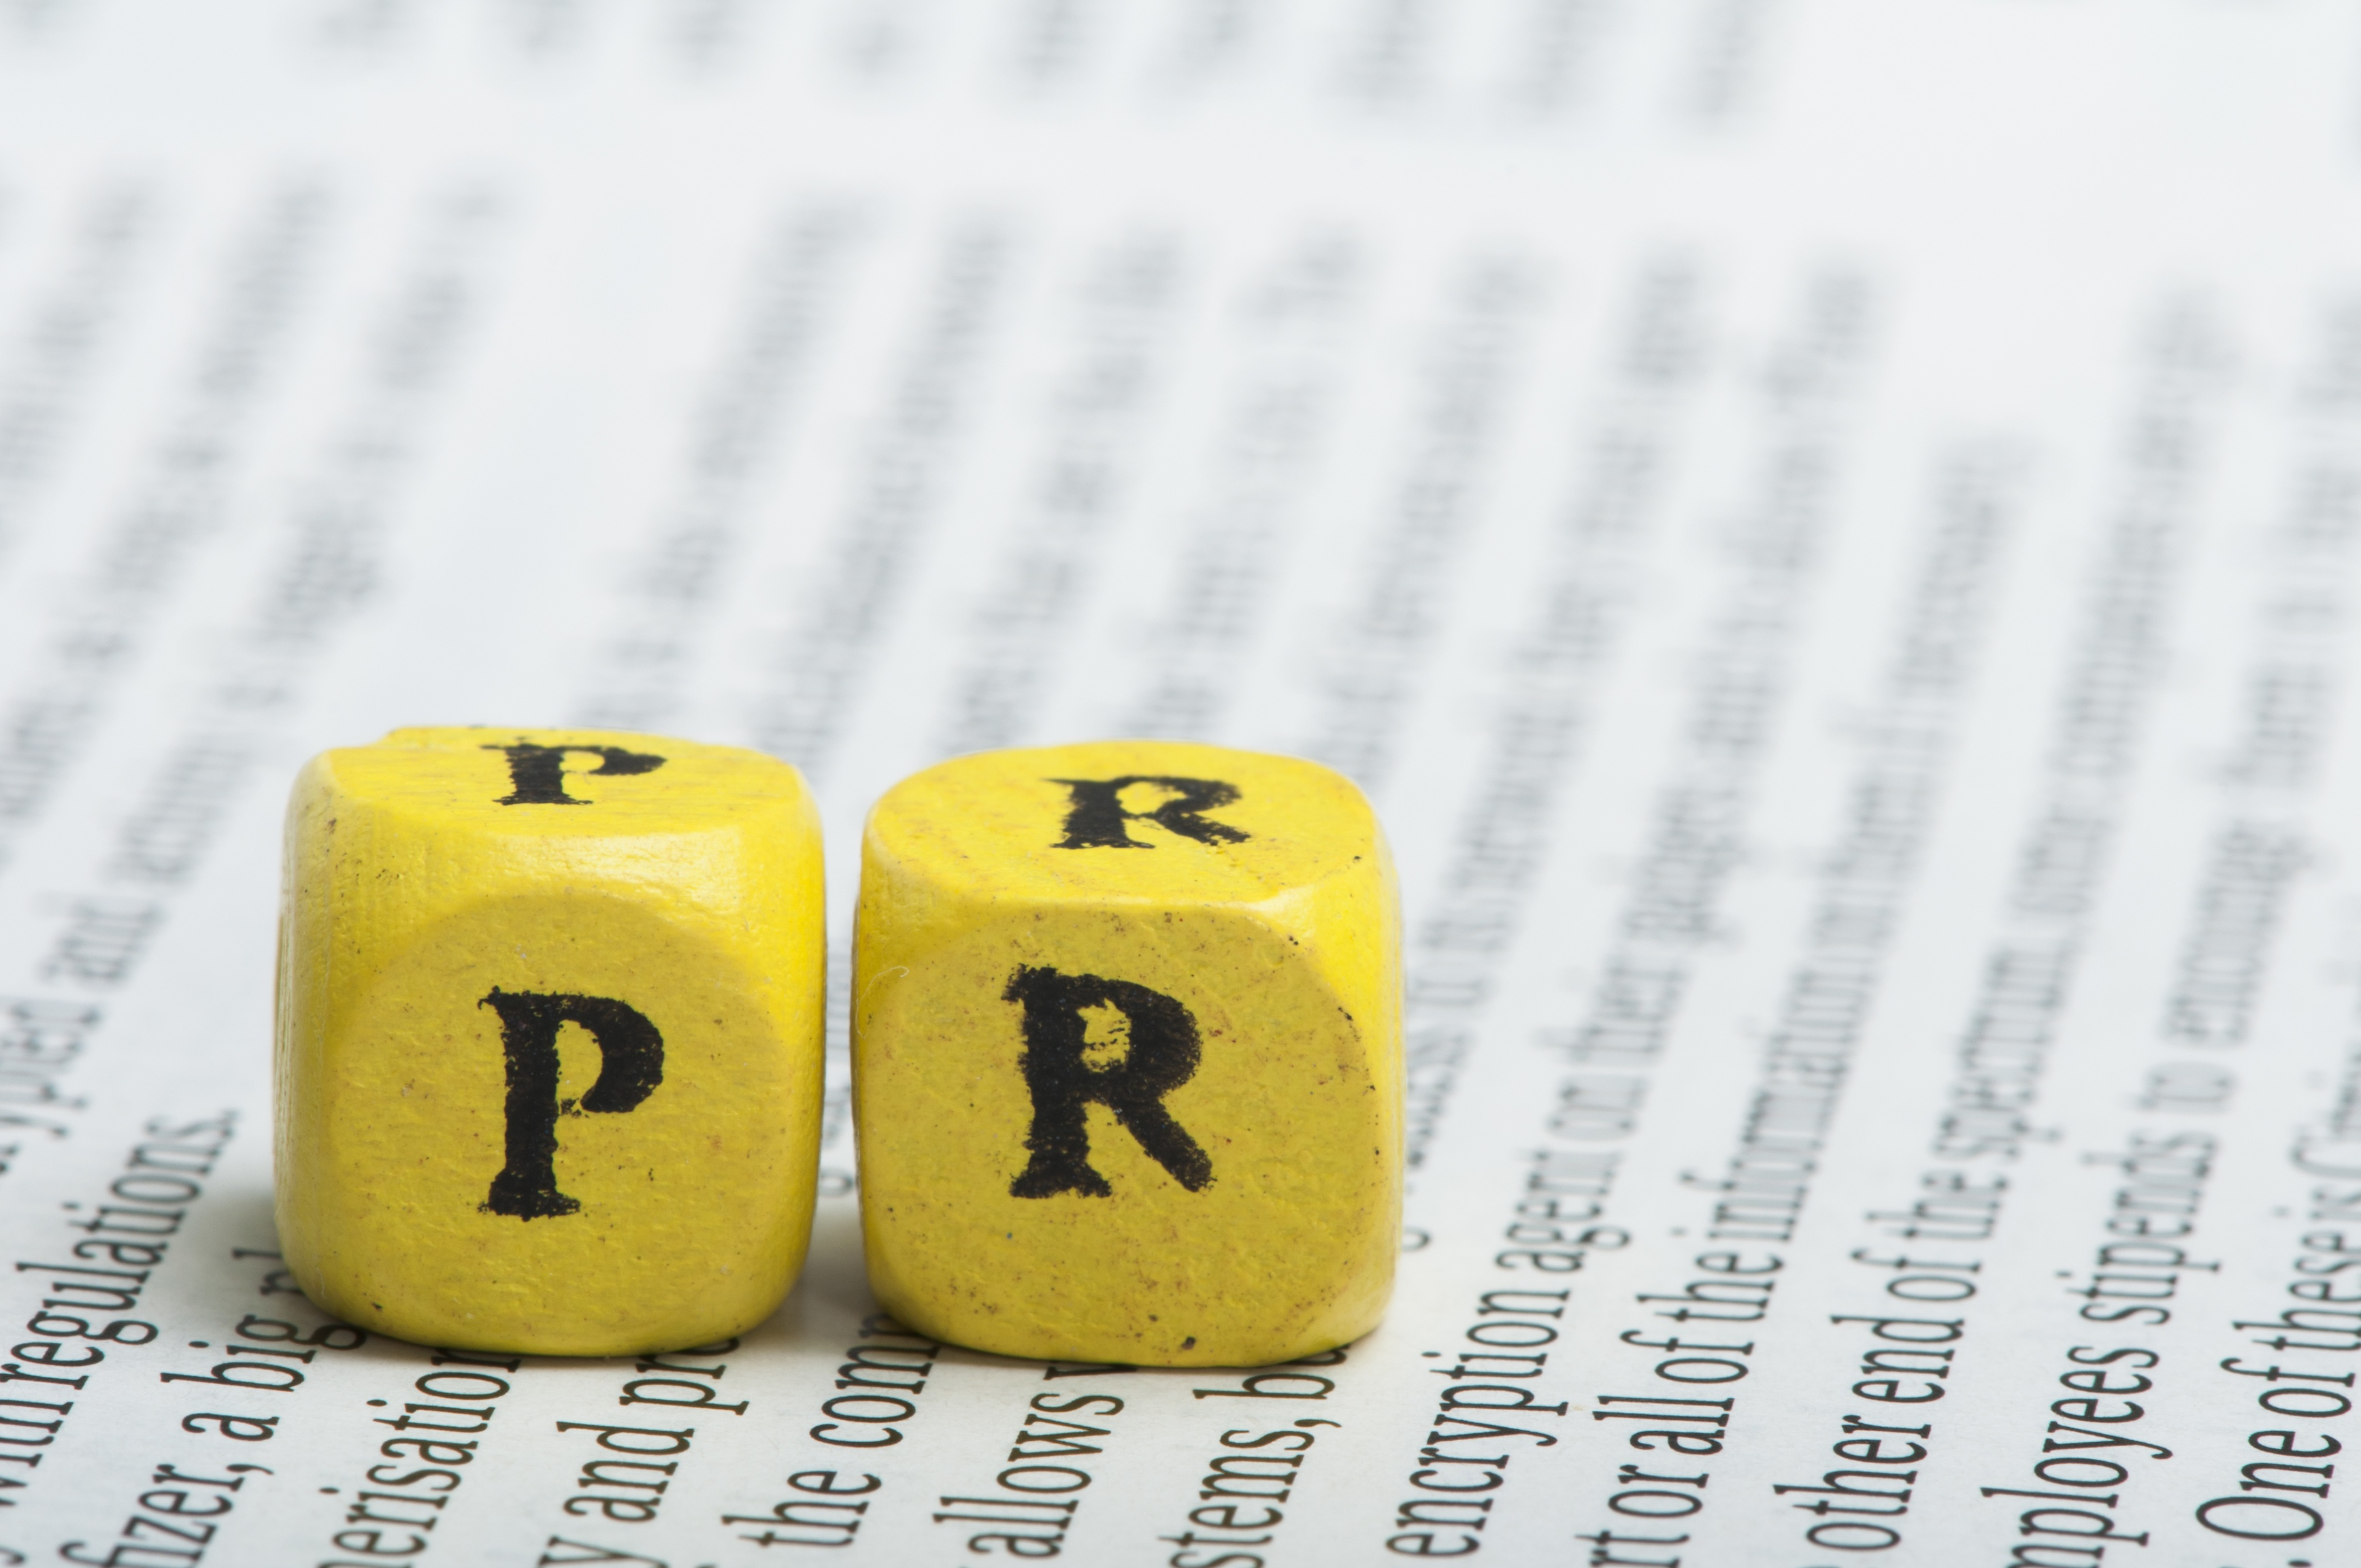 What PR agencies are looking for in new hires